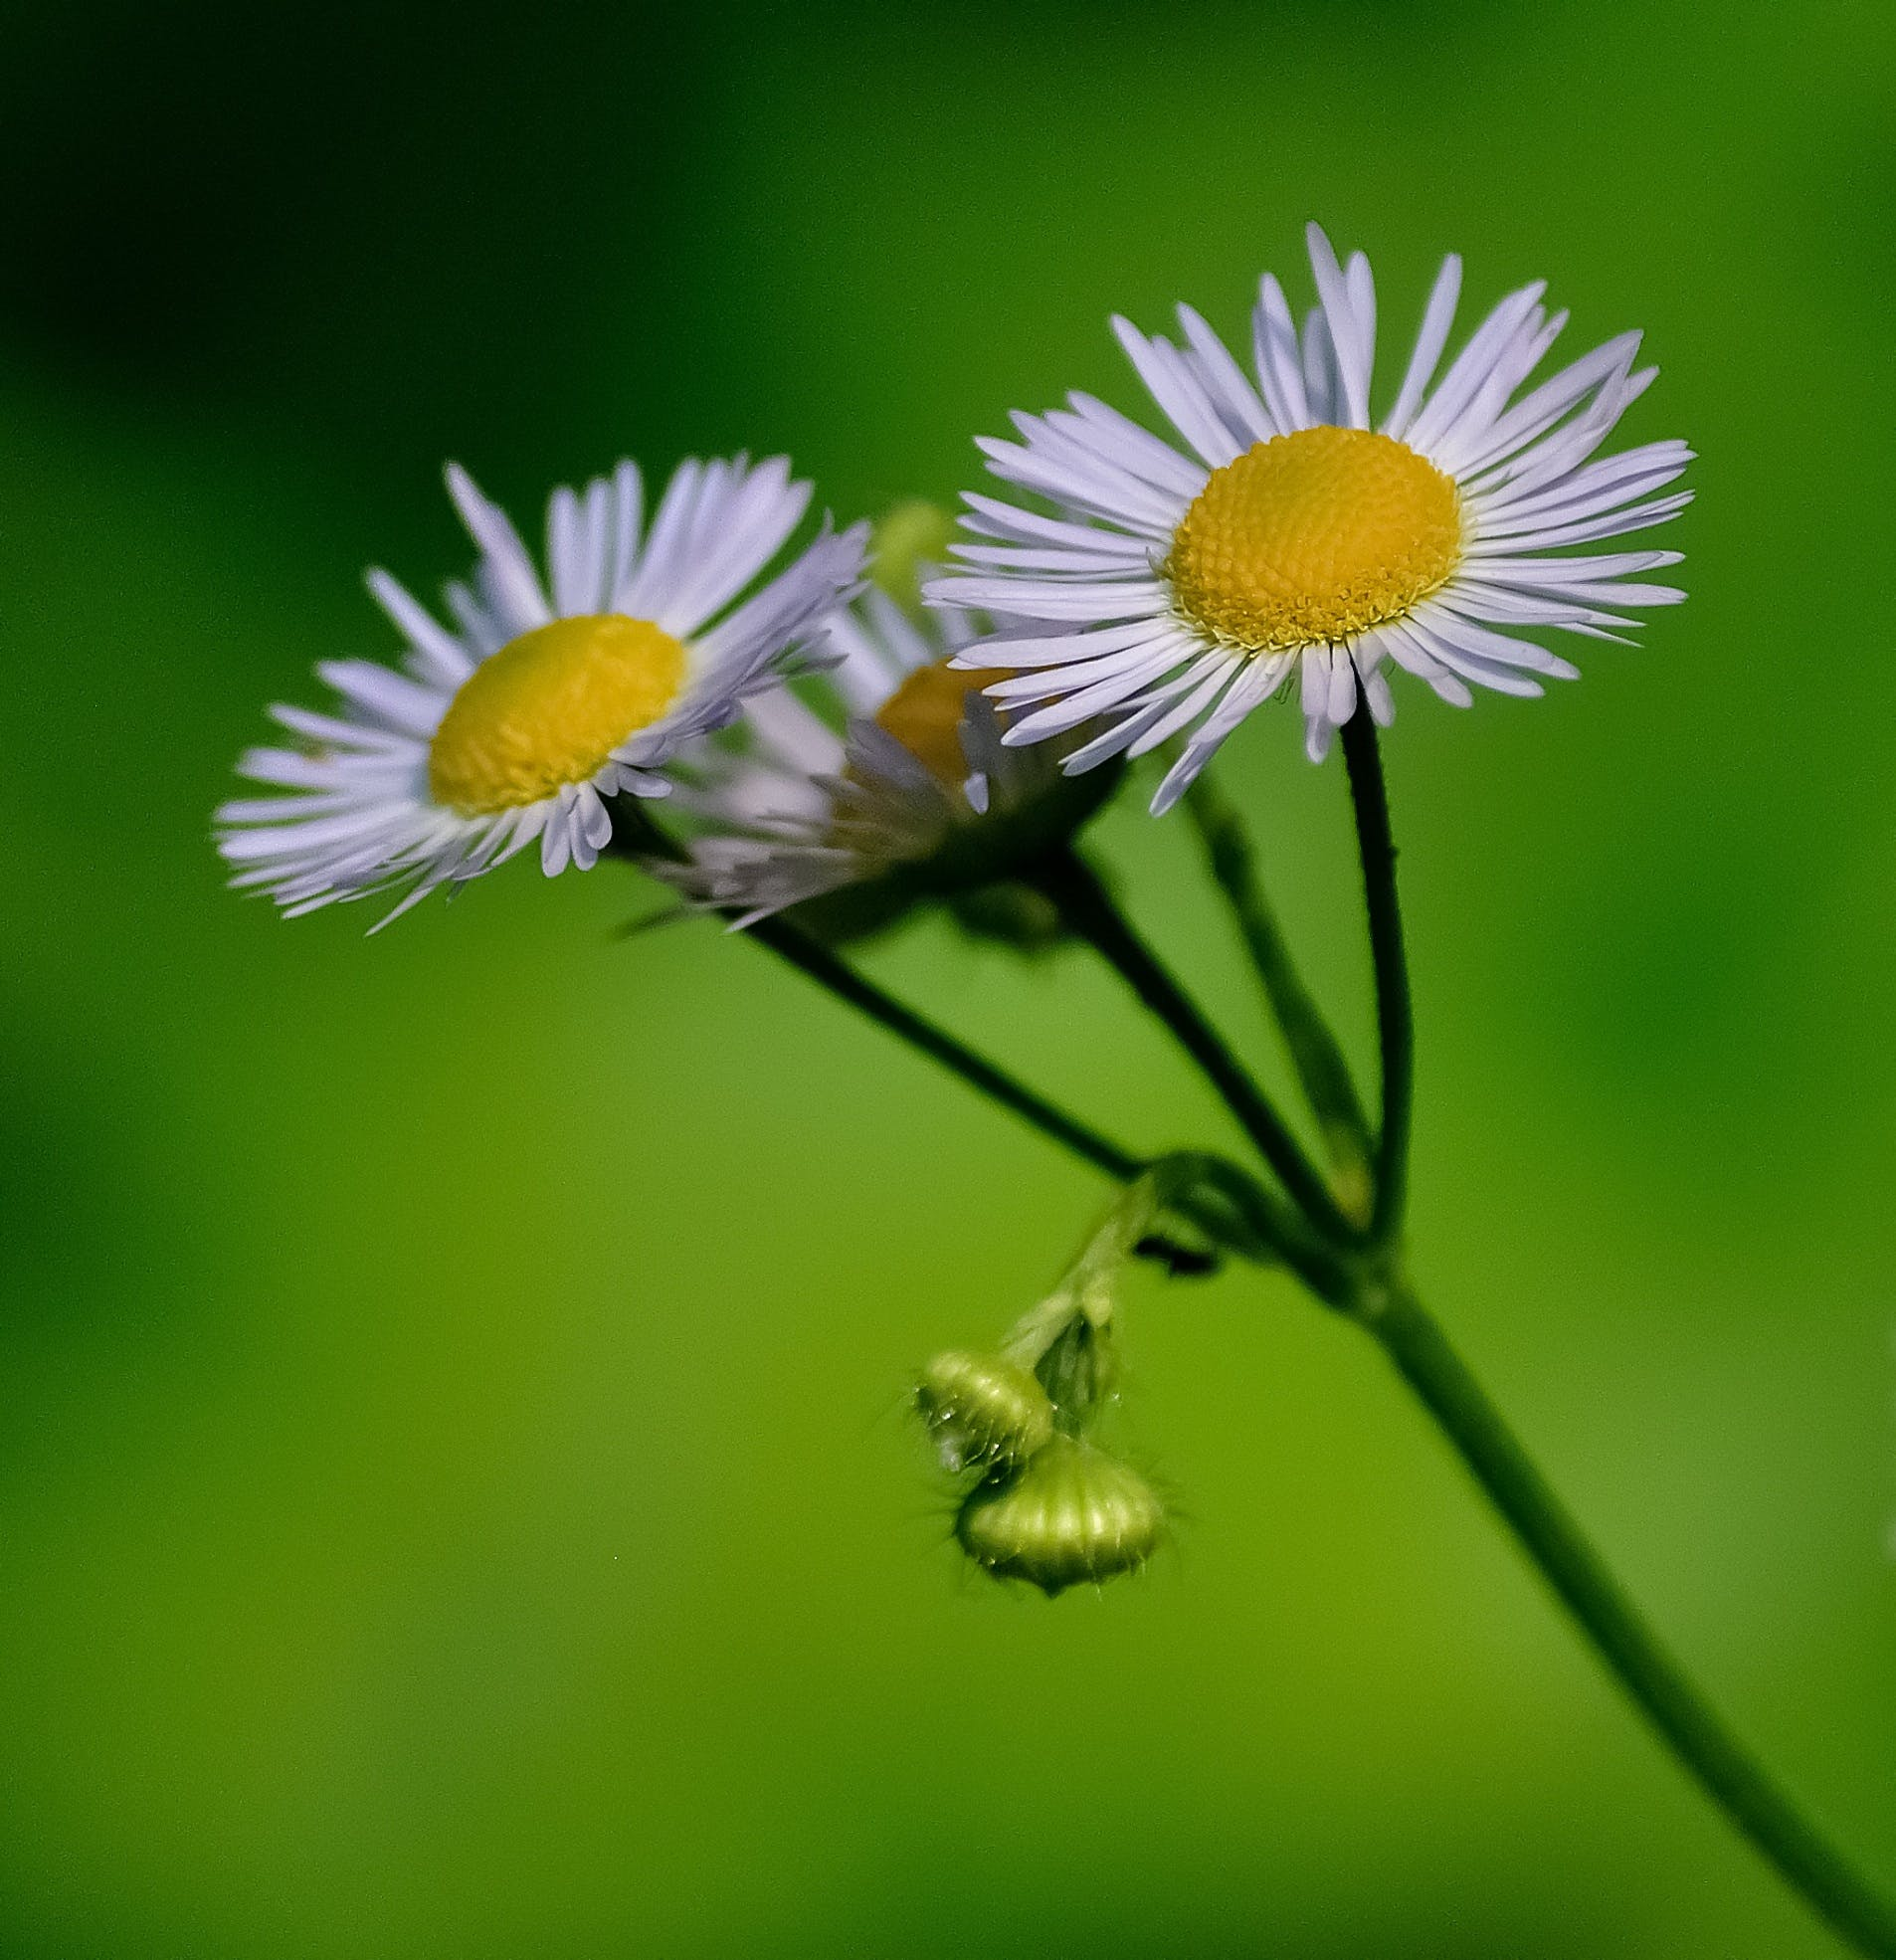 Selective Focus Photo of Daisy Flowers